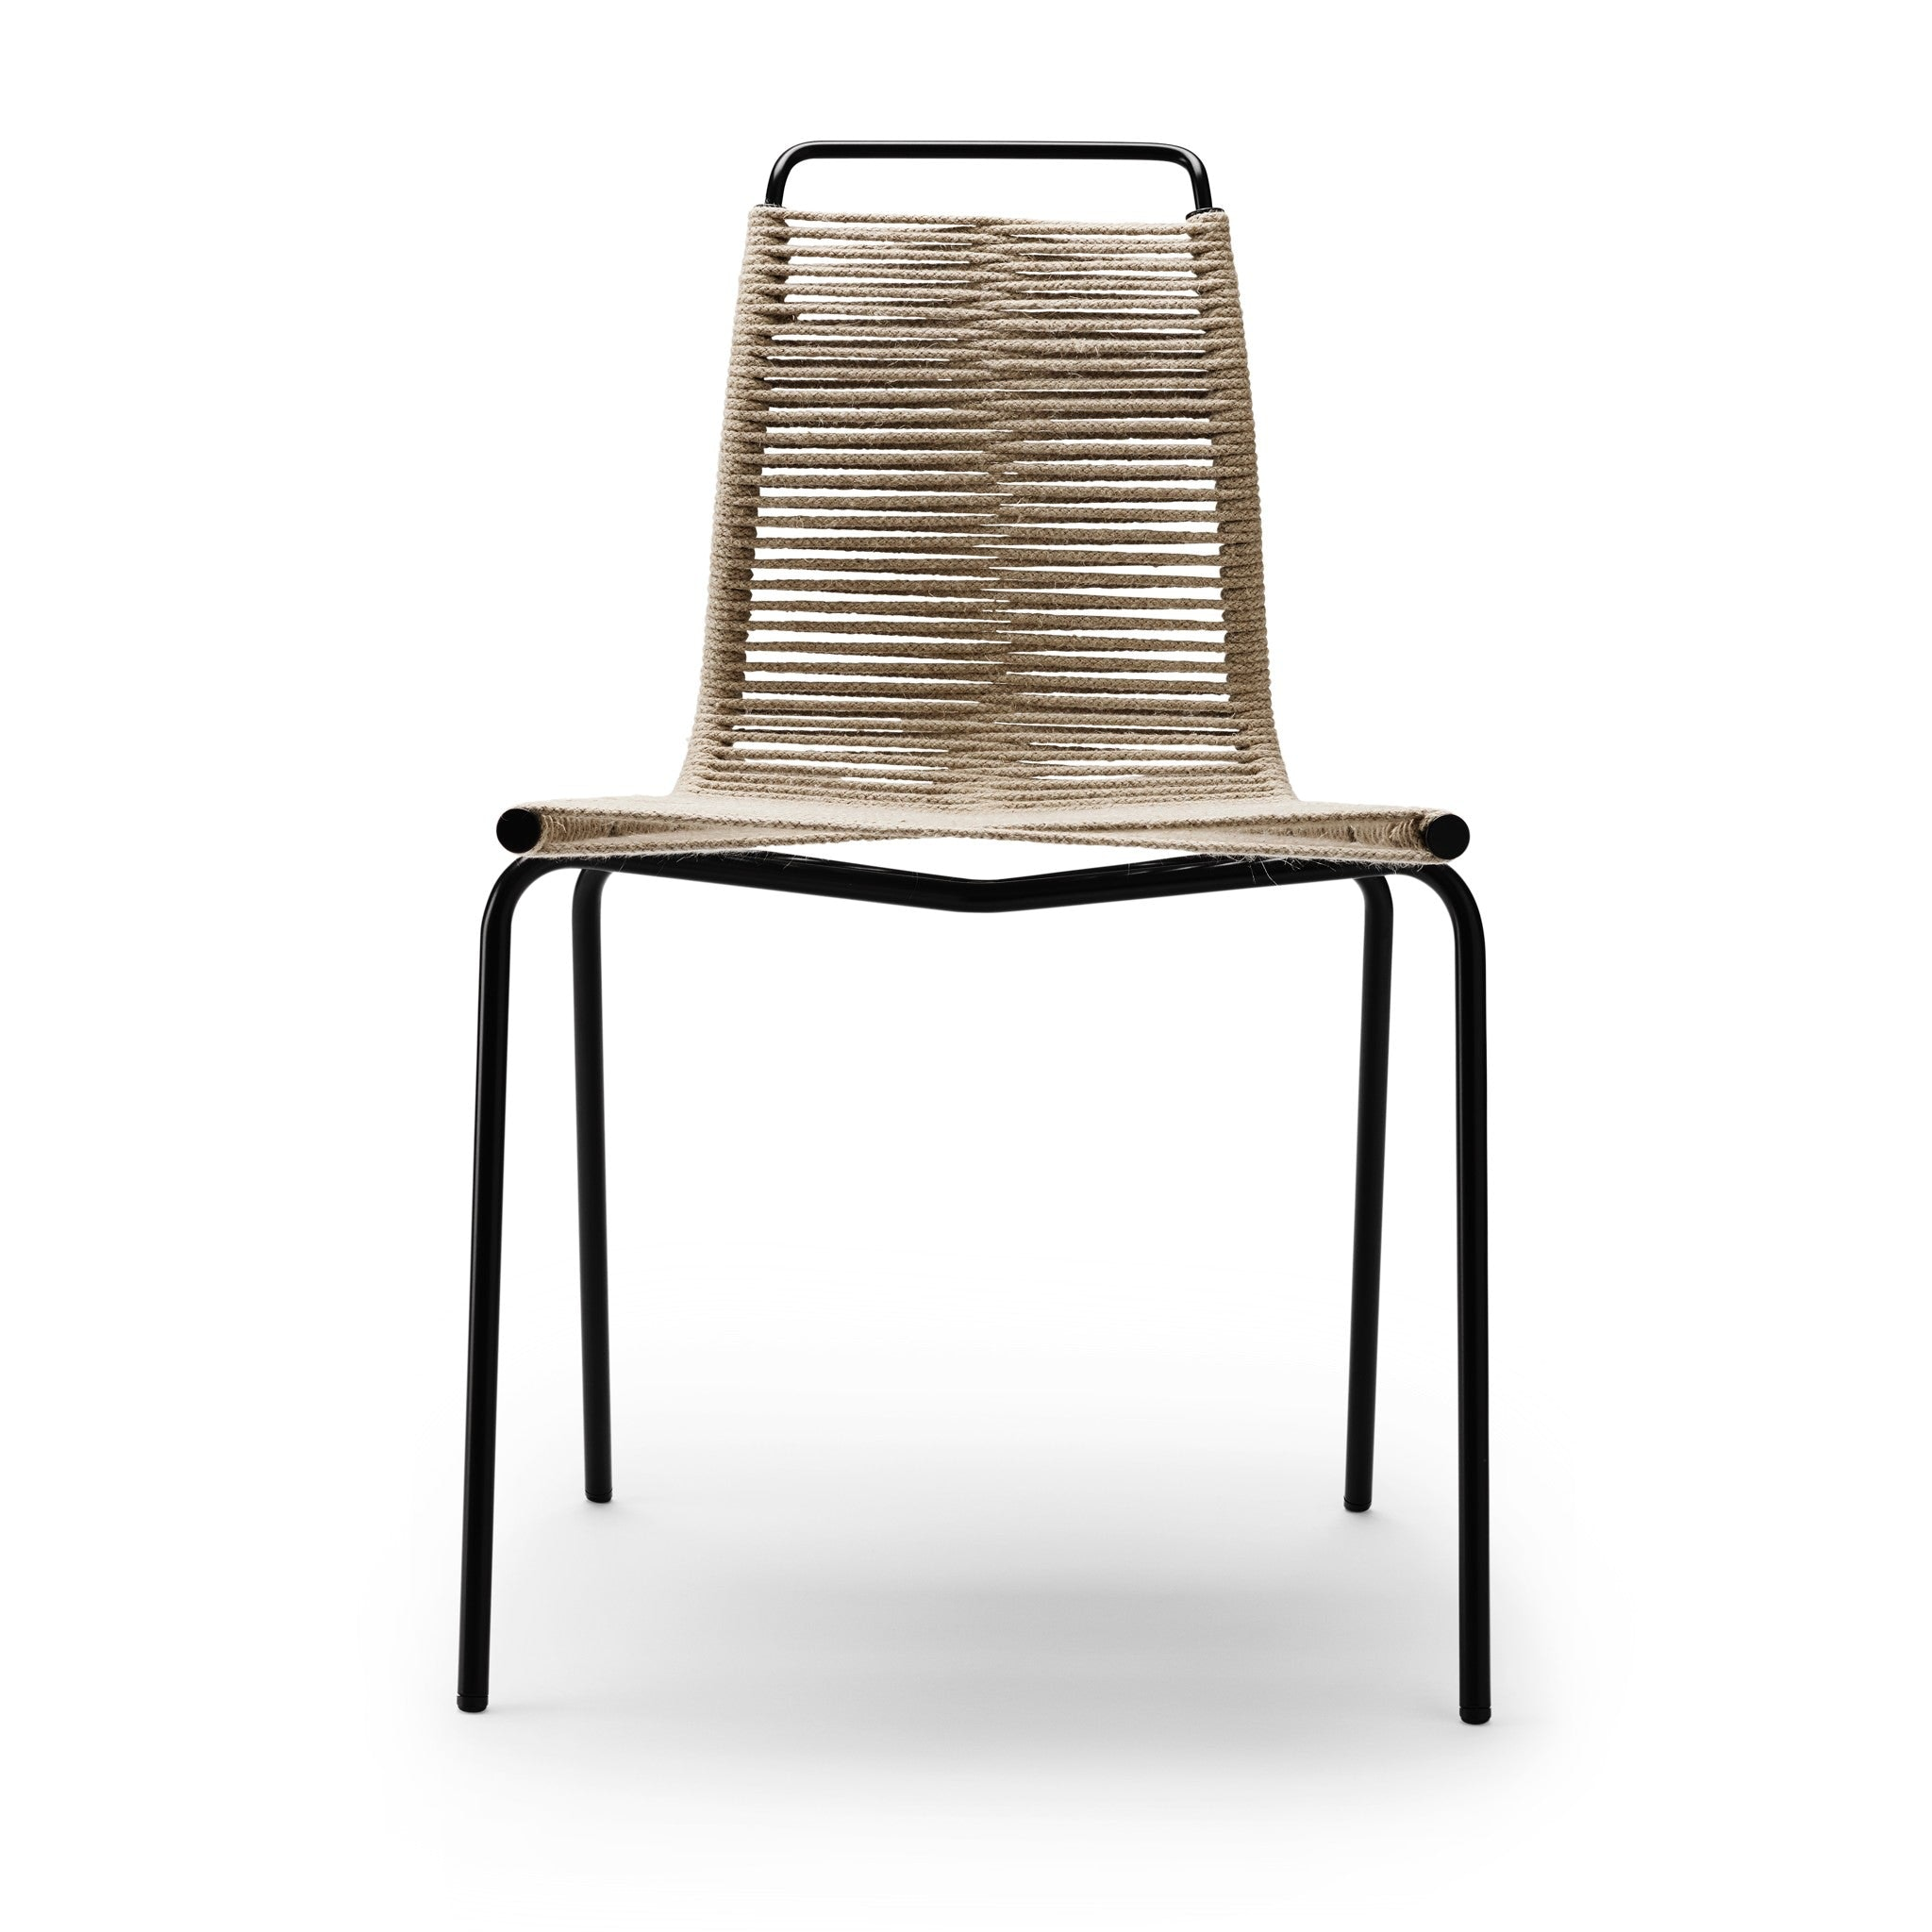 PK1 Chair by Carl Hansen & Søn